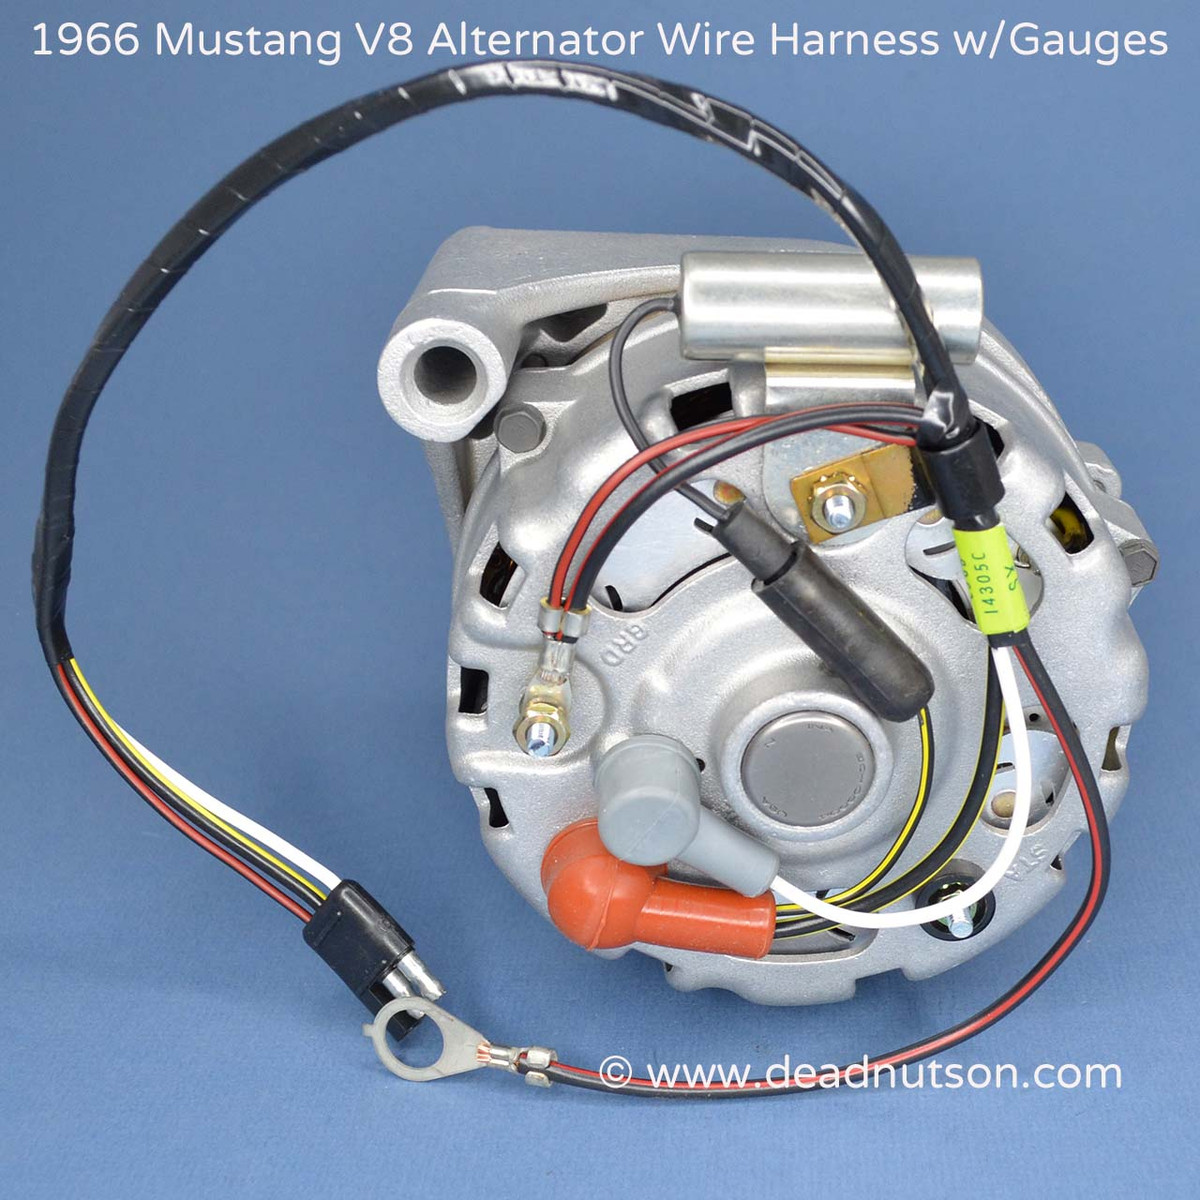 Fuse Diagram Along With 1965 Ford Mustang Alternator Wiring Diagram In